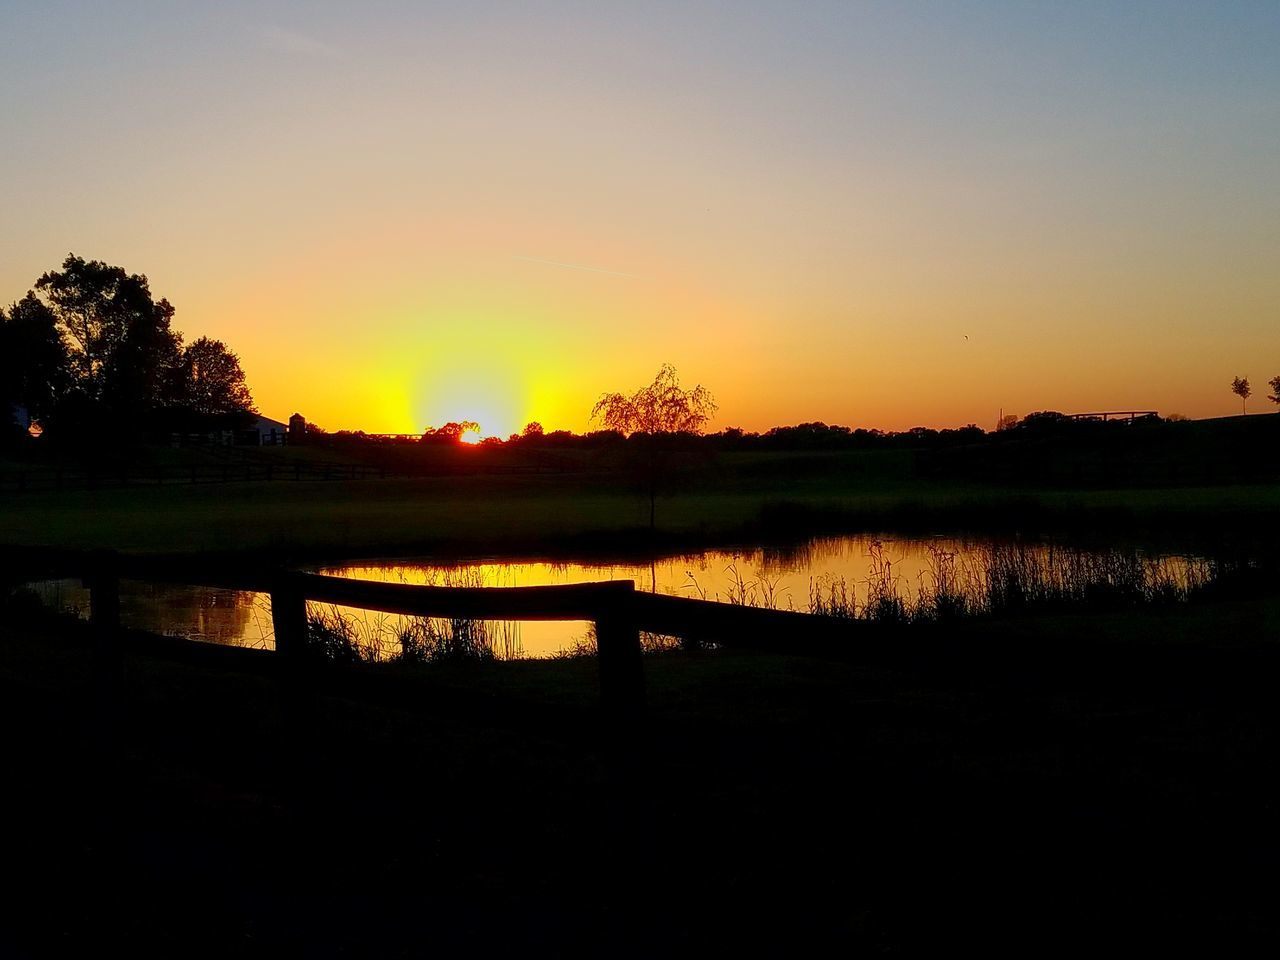 sunset, reflection, nature, silhouette, tranquil scene, lake, scenics, beauty in nature, water, tranquility, orange color, tree, no people, idyllic, sky, outdoors, sun, landscape